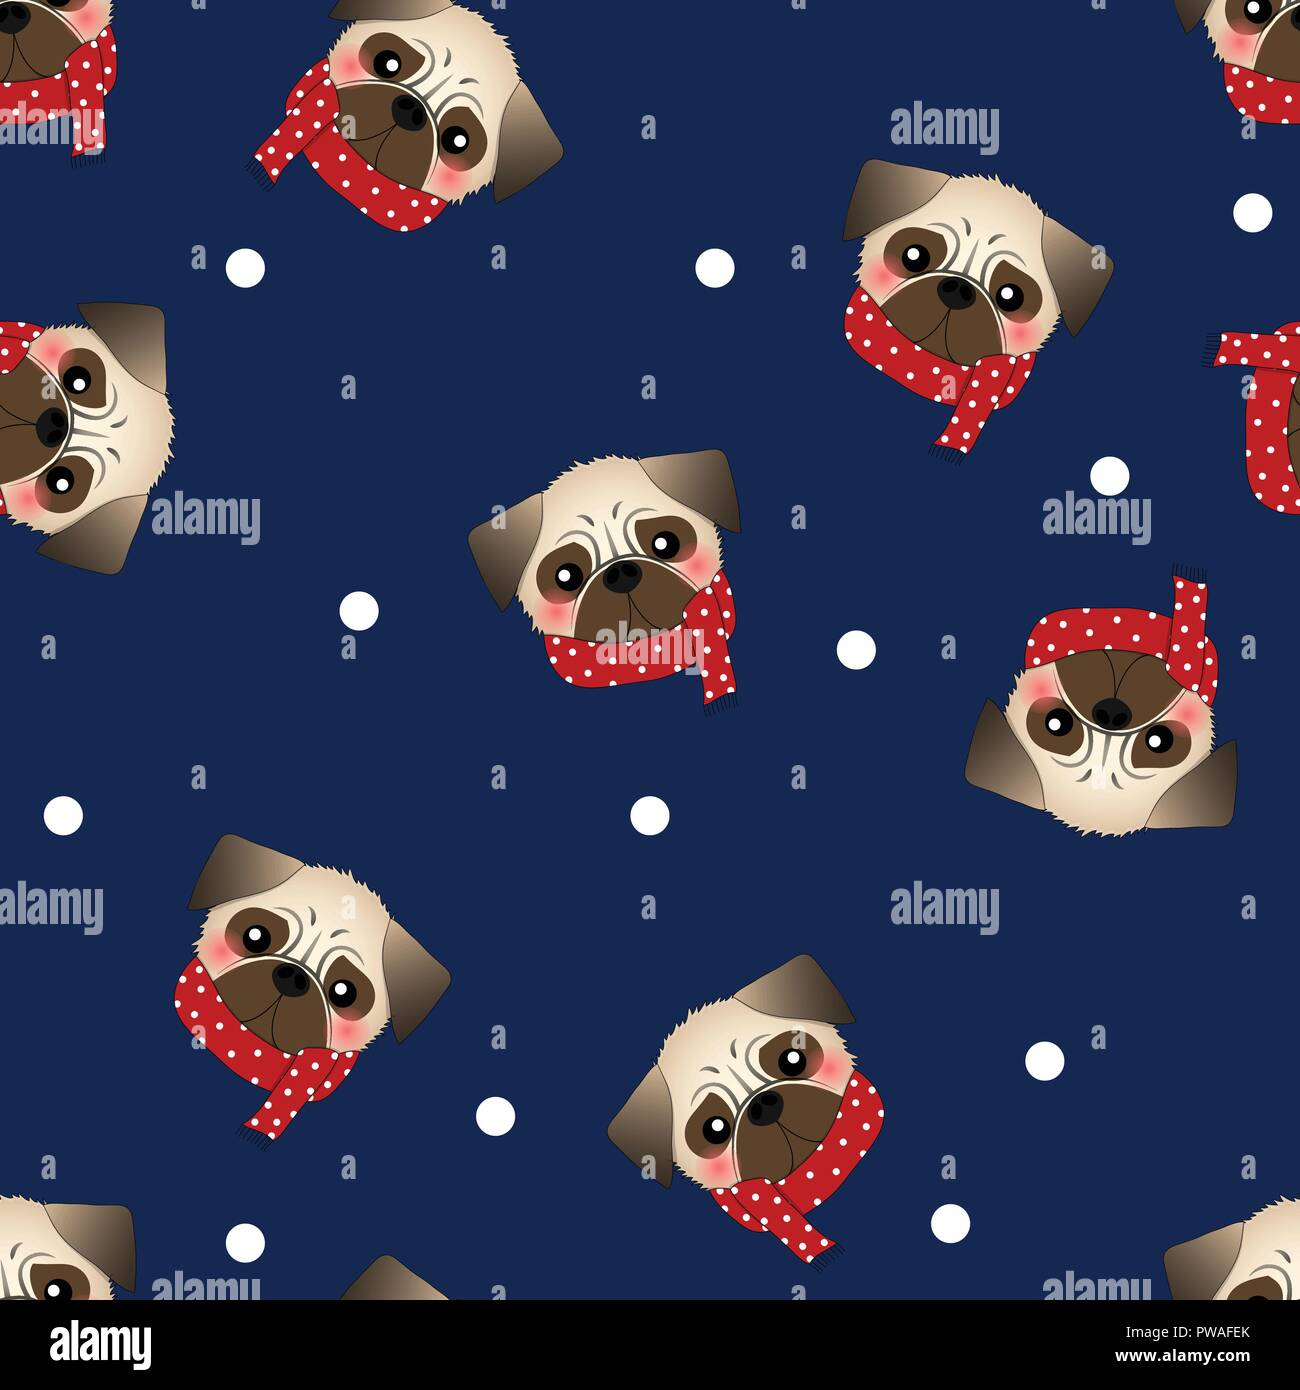 Pug Dog with Red Scarf on Navy Blue Background. Vector Illustration. Stock Vector